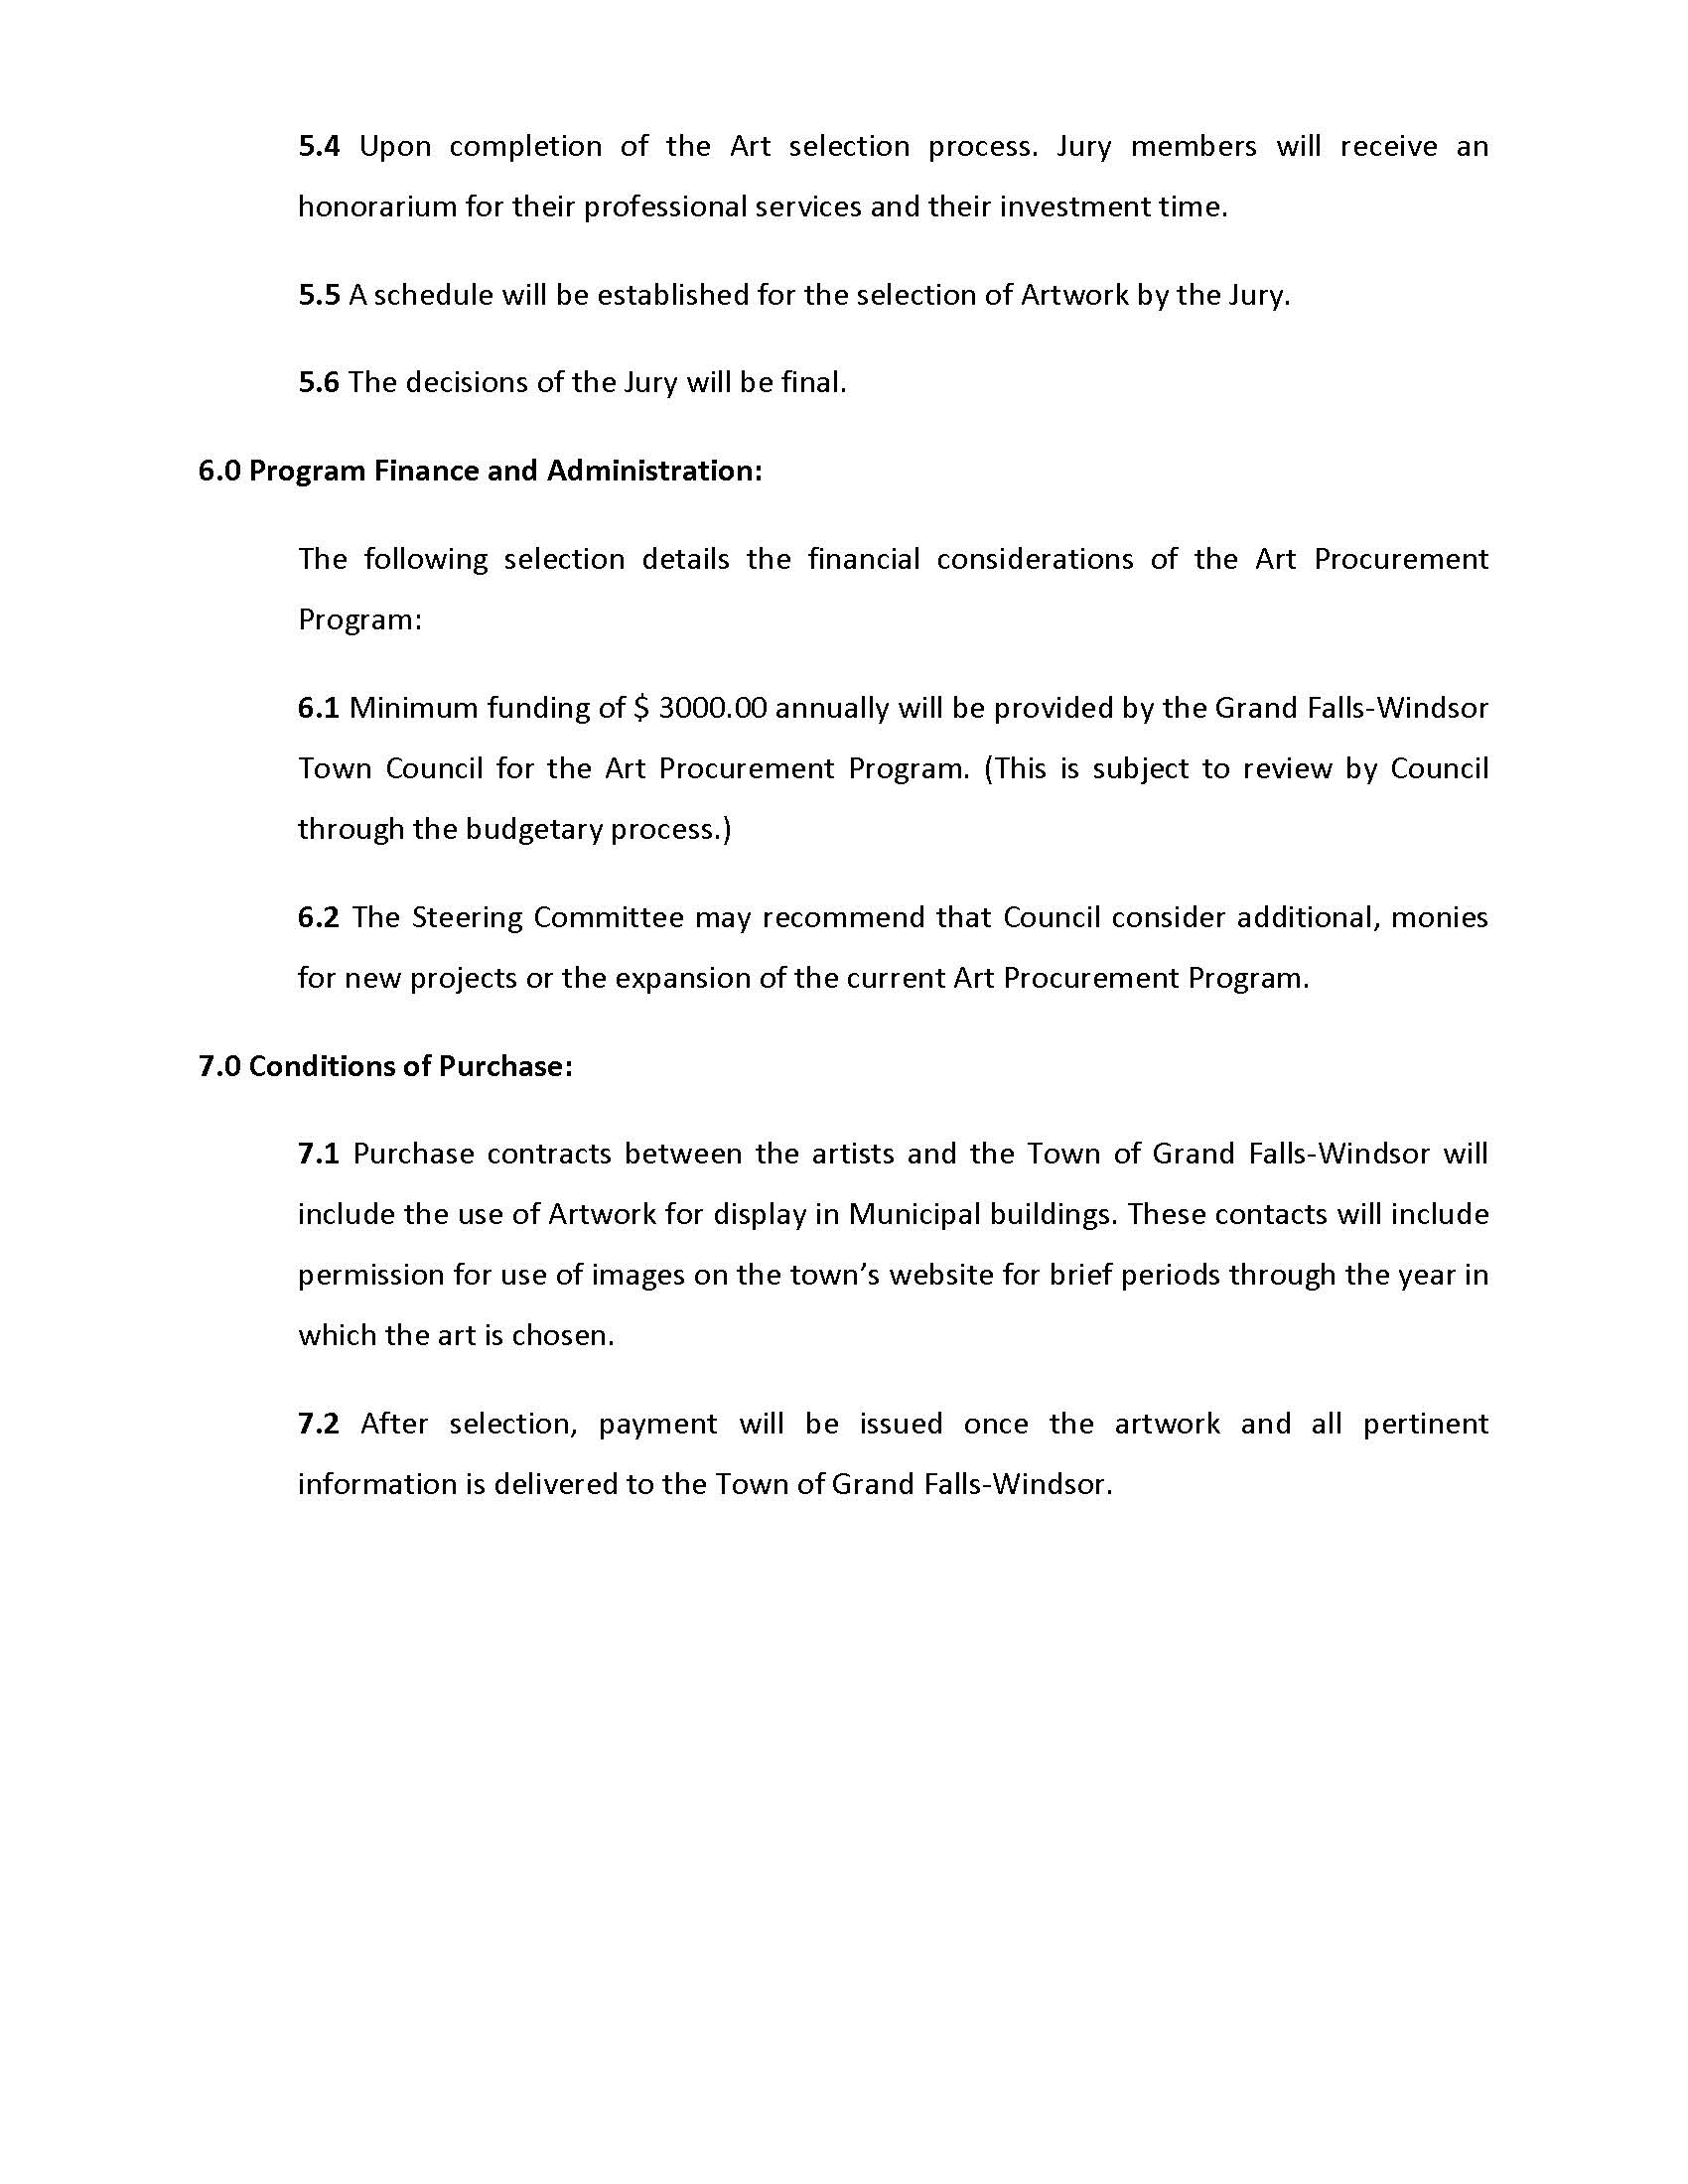 ART PROCUREMENT REGULATIONS 2017 Revised Page 6